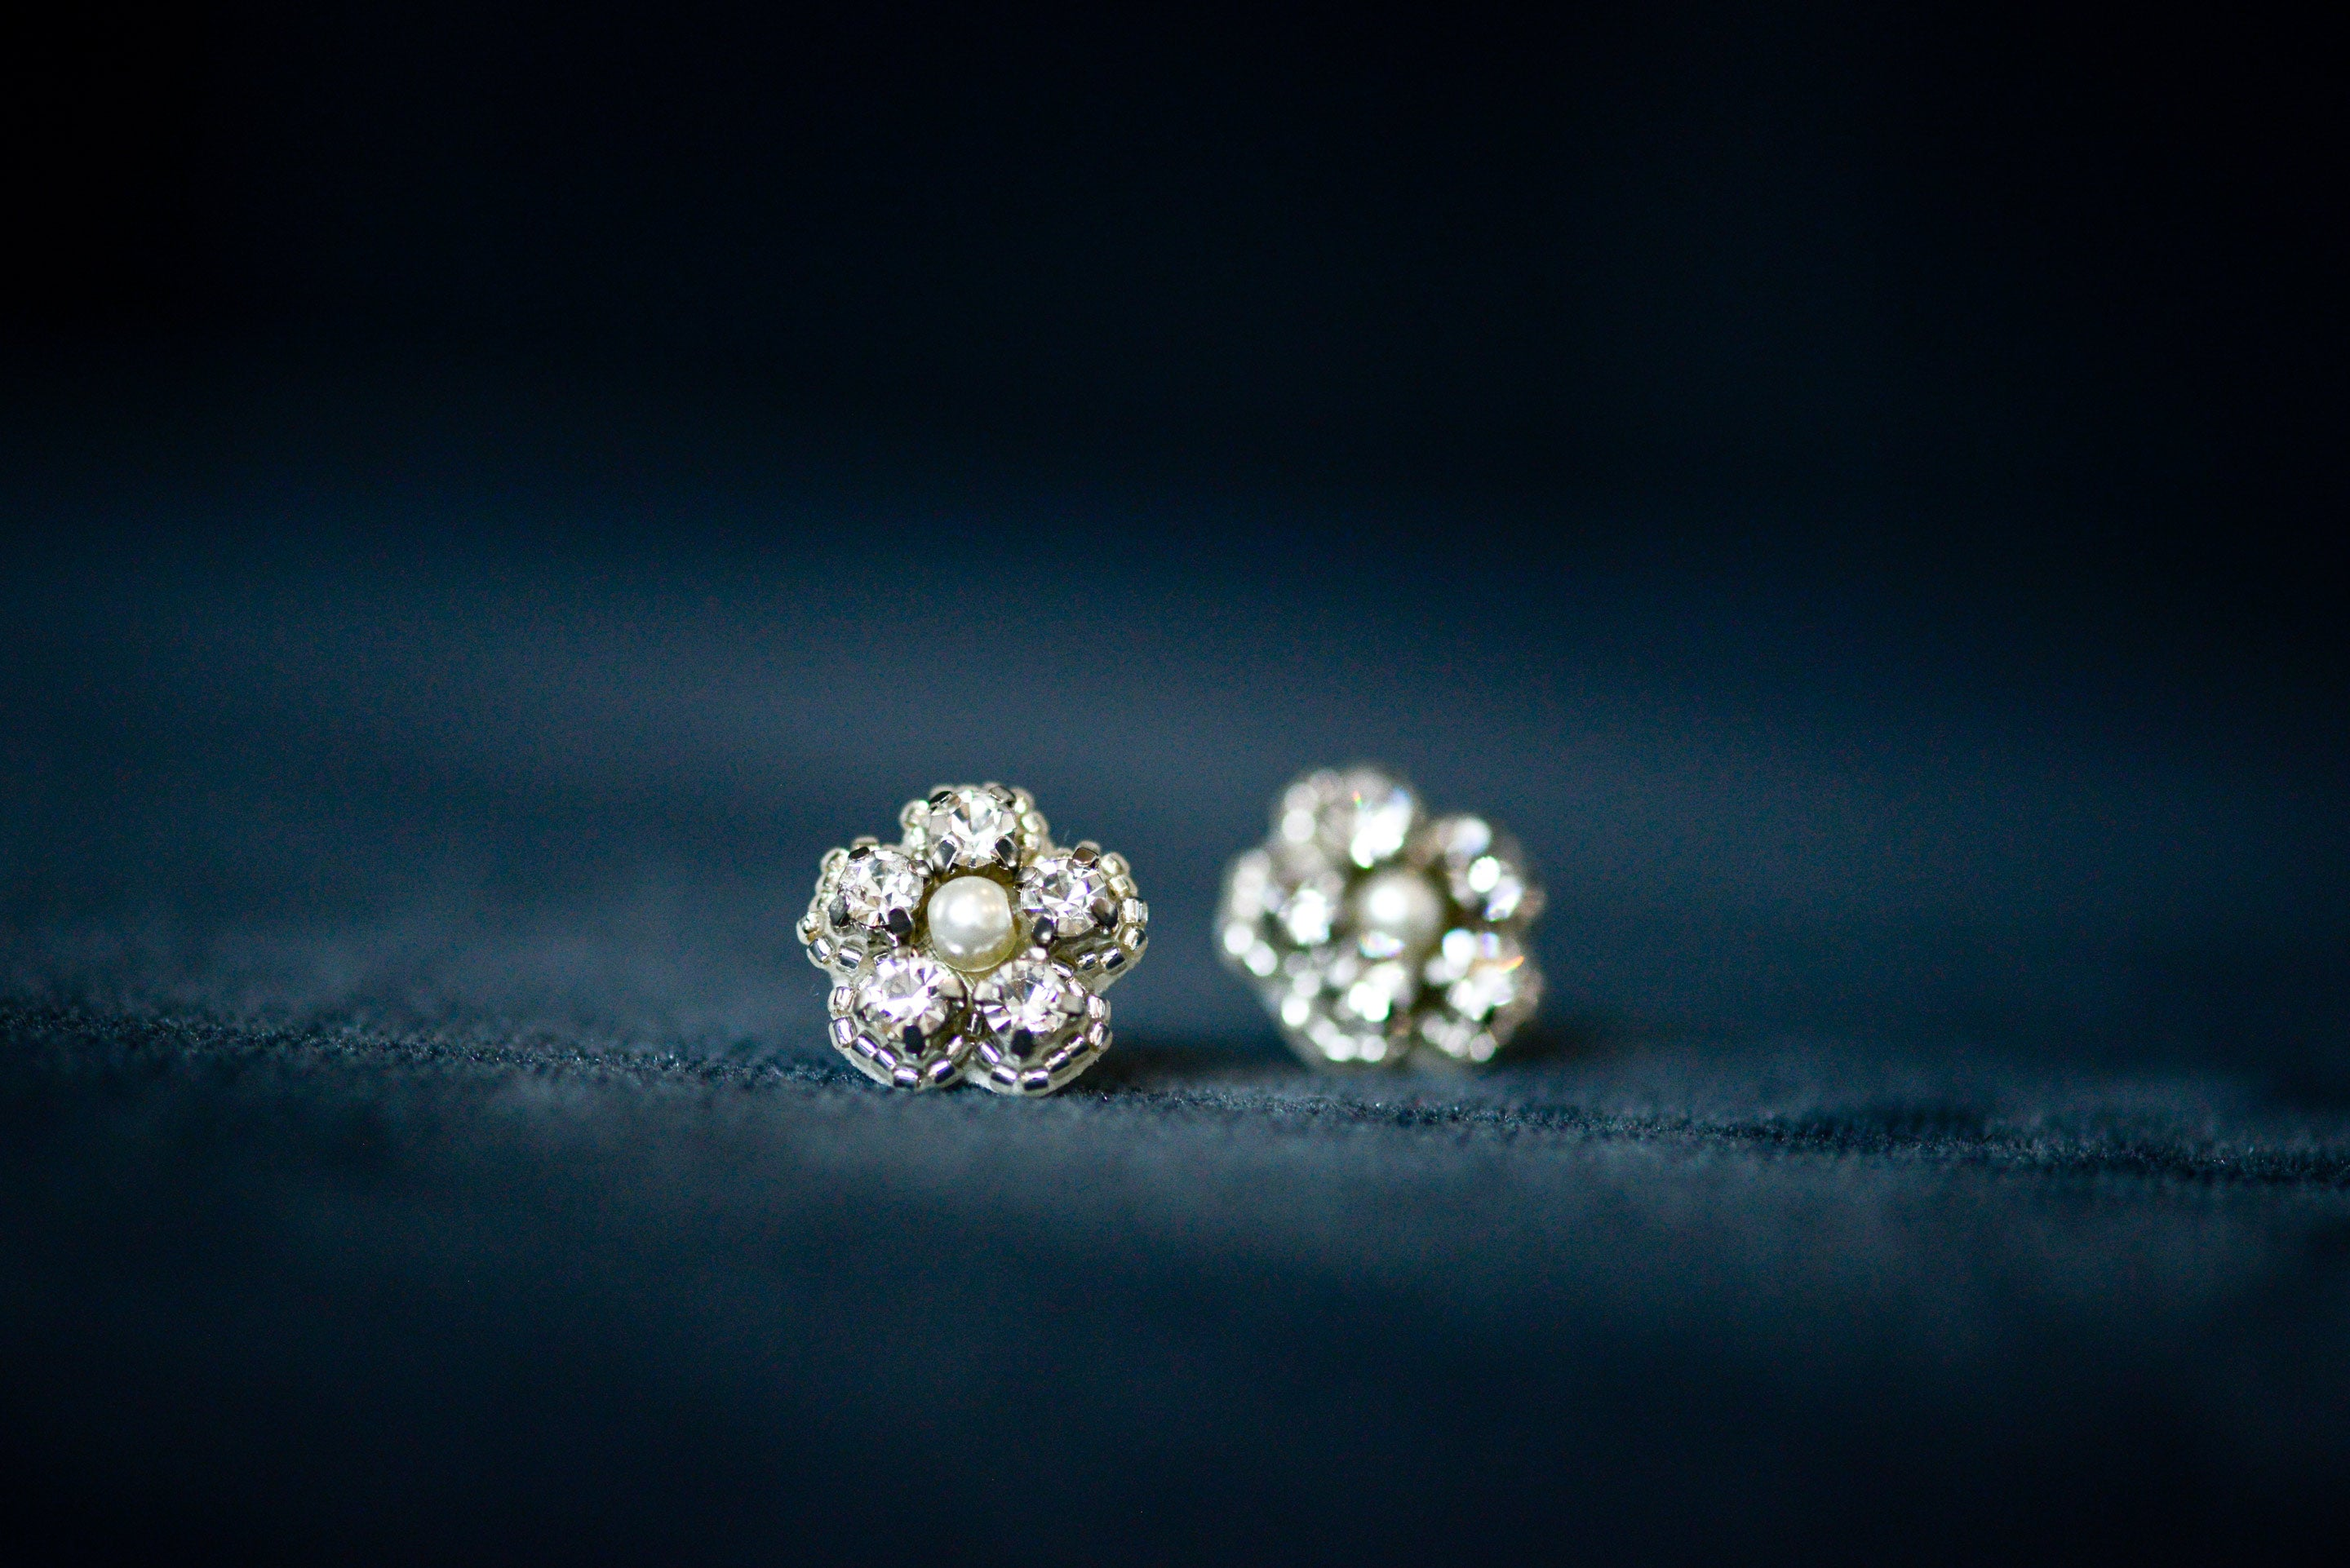 Flori bridal studs by Britten weddings